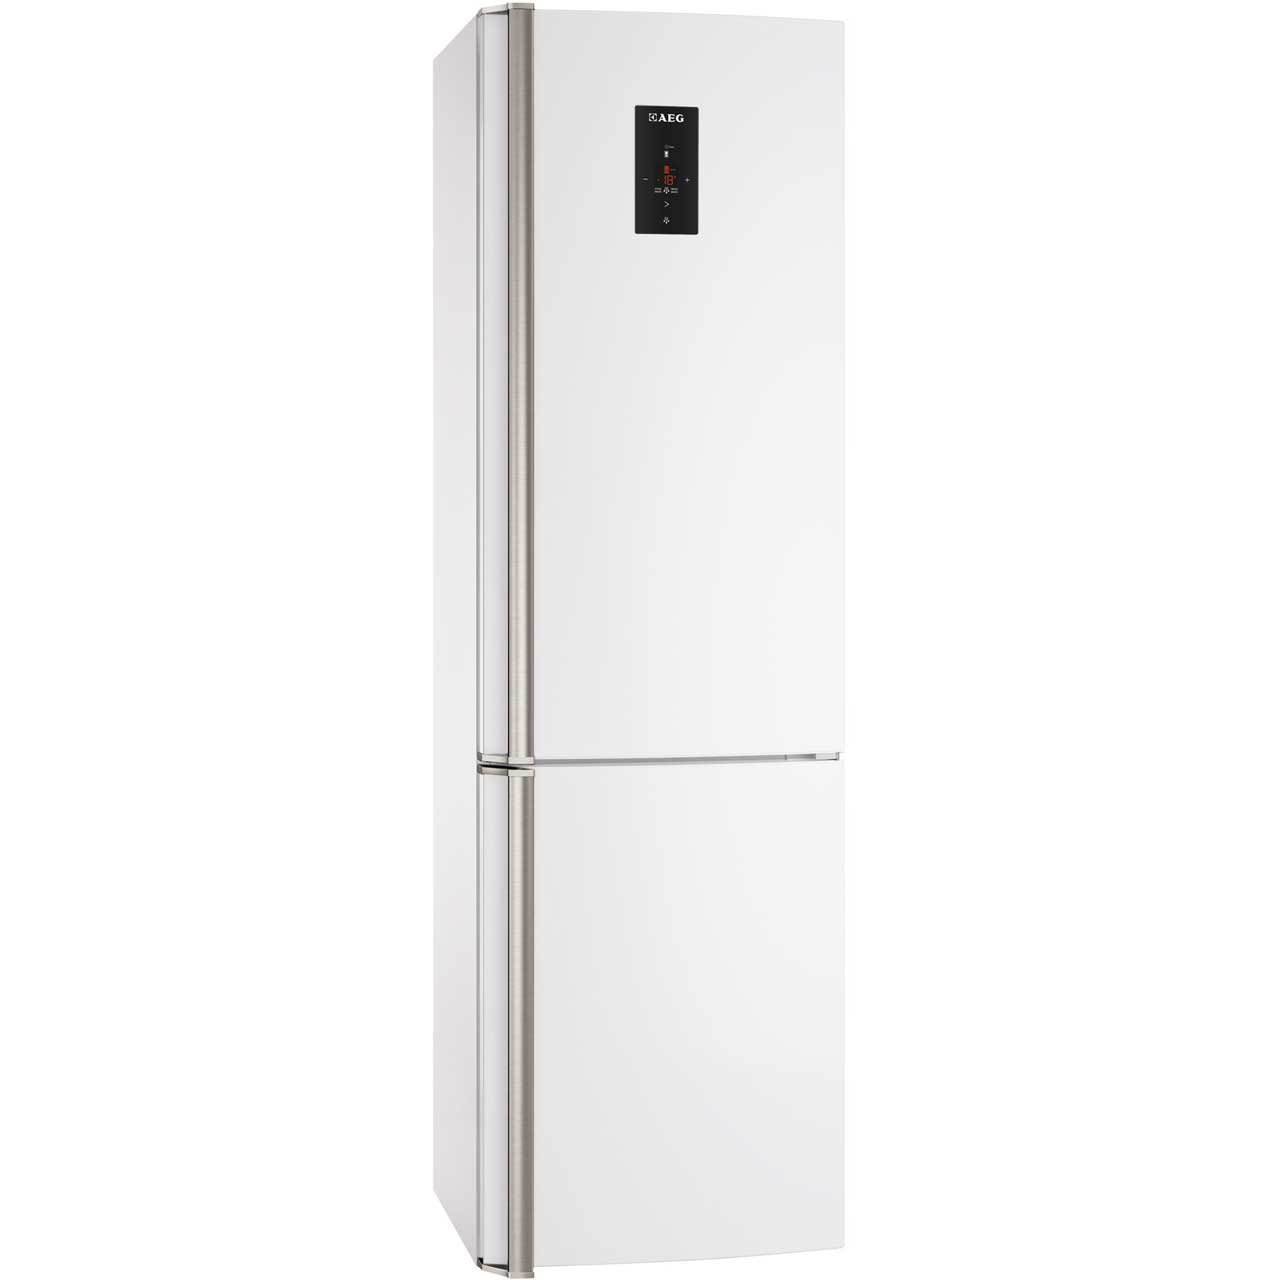 AEG S83920CMW2 Free Standing Fridge Freezer Frost Free in White